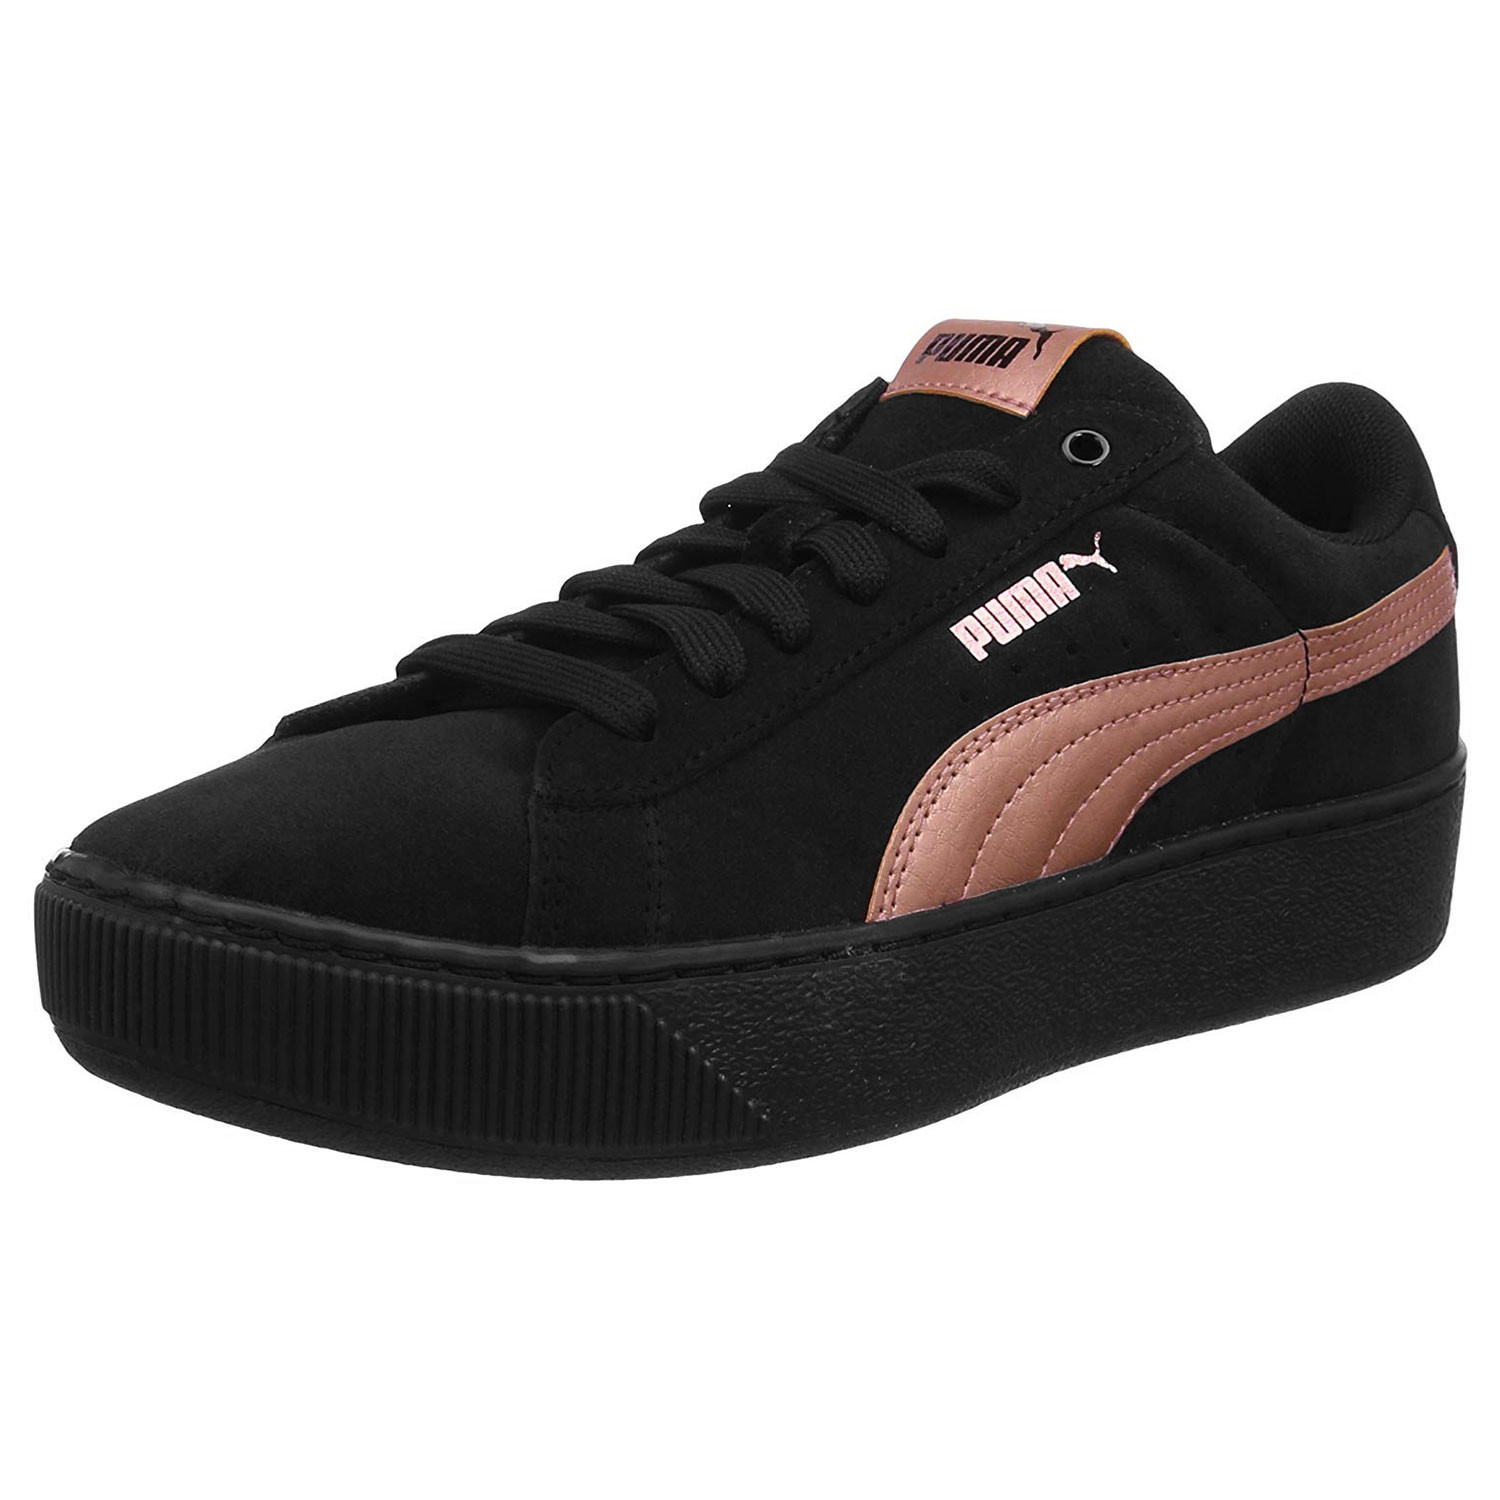 chaussure femme puma montant